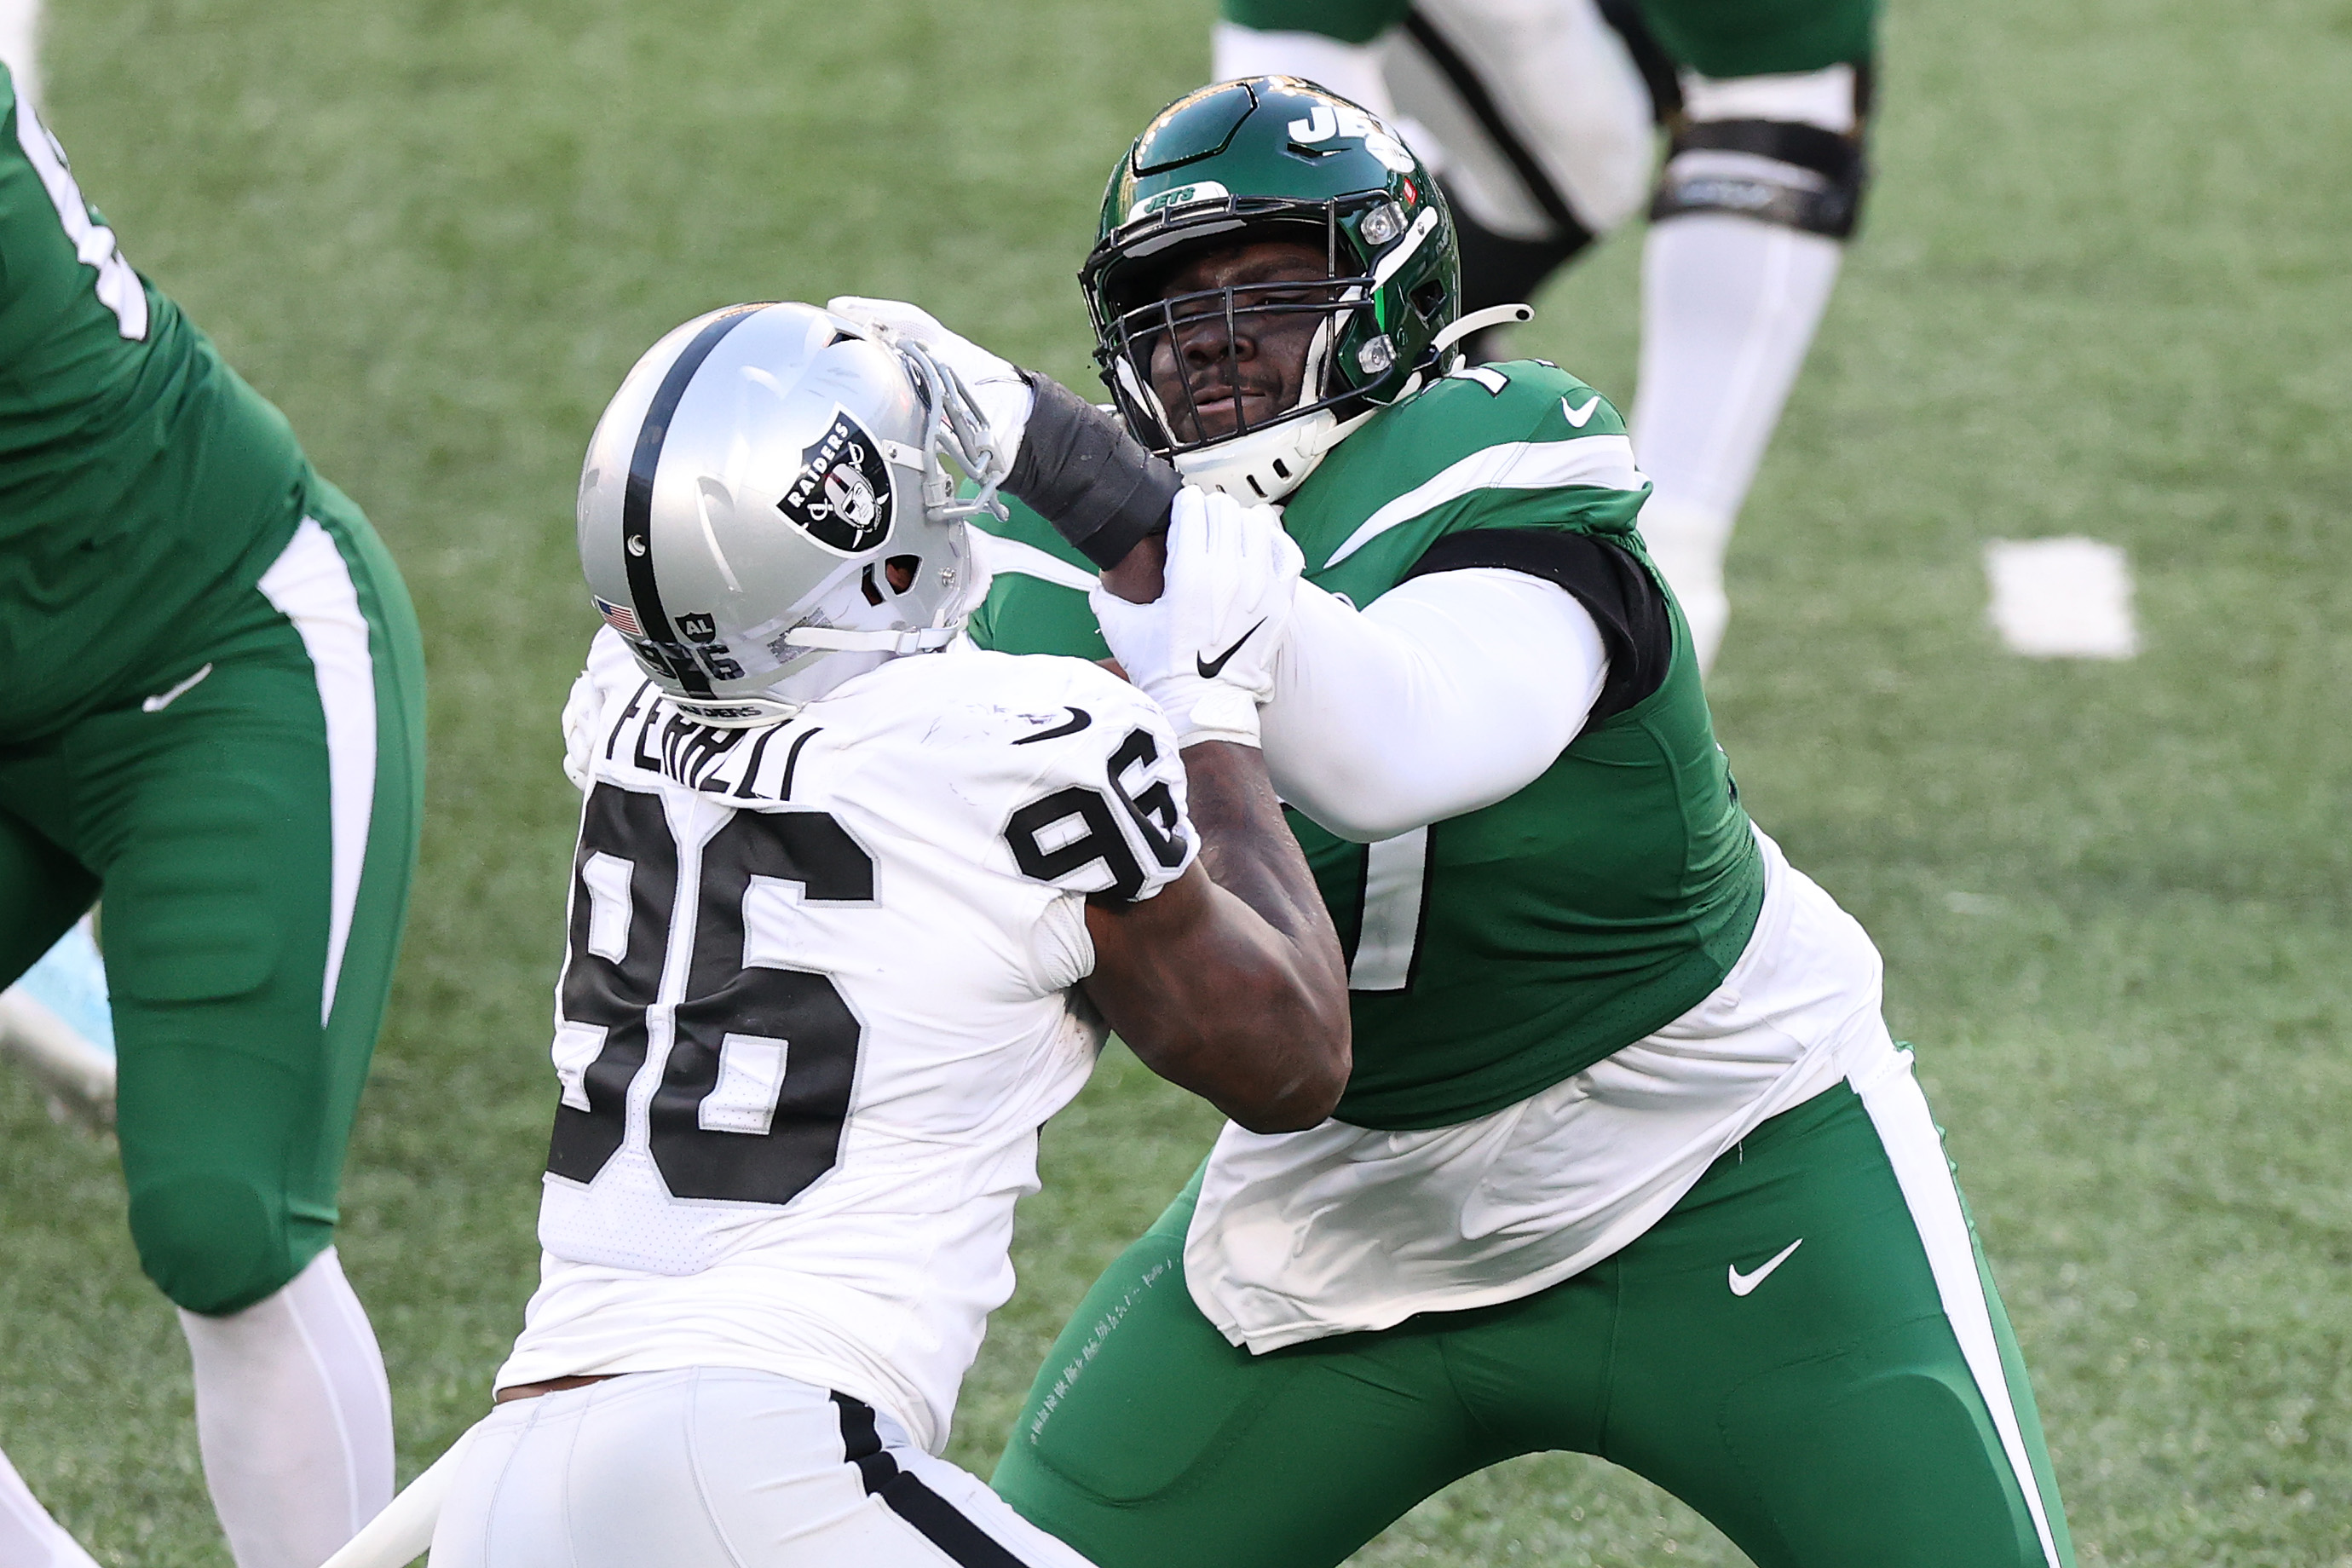 Nick Mangold wants to see Mekhi Becton build on strong rookie year